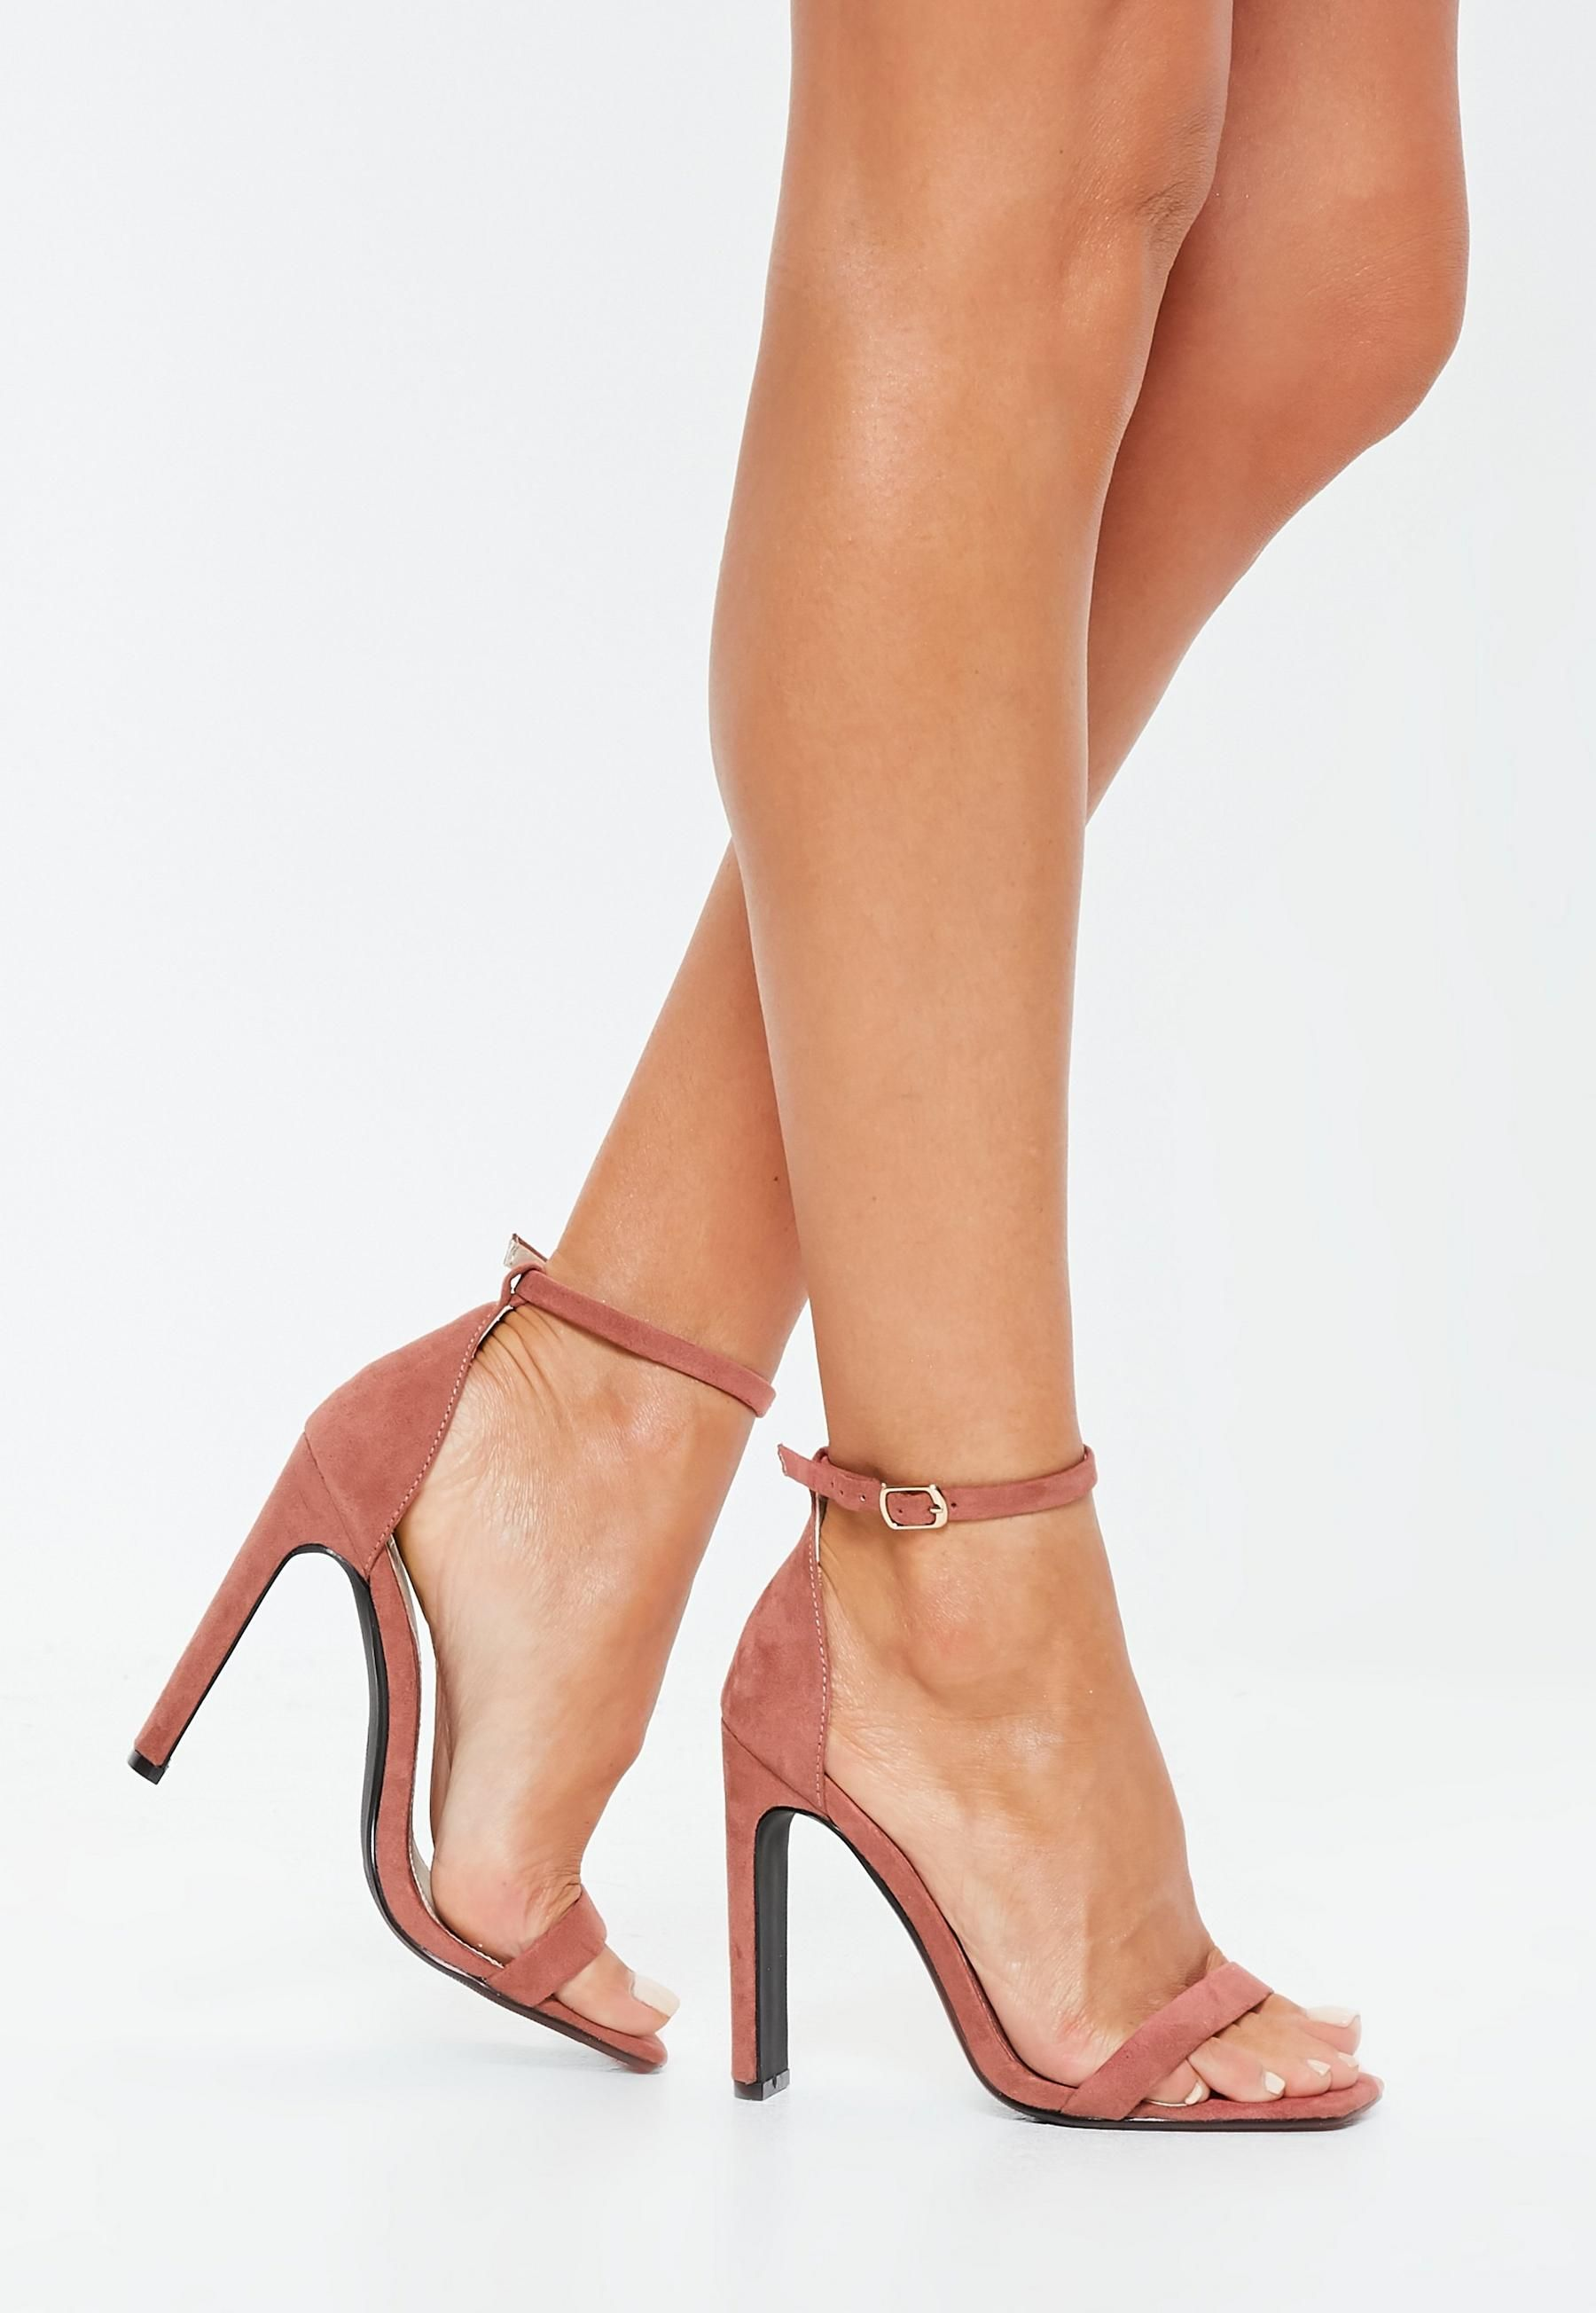 6a1b5b00445e Missguided Terracotta Pink Square Toe Barely There Heels in 2019 ...